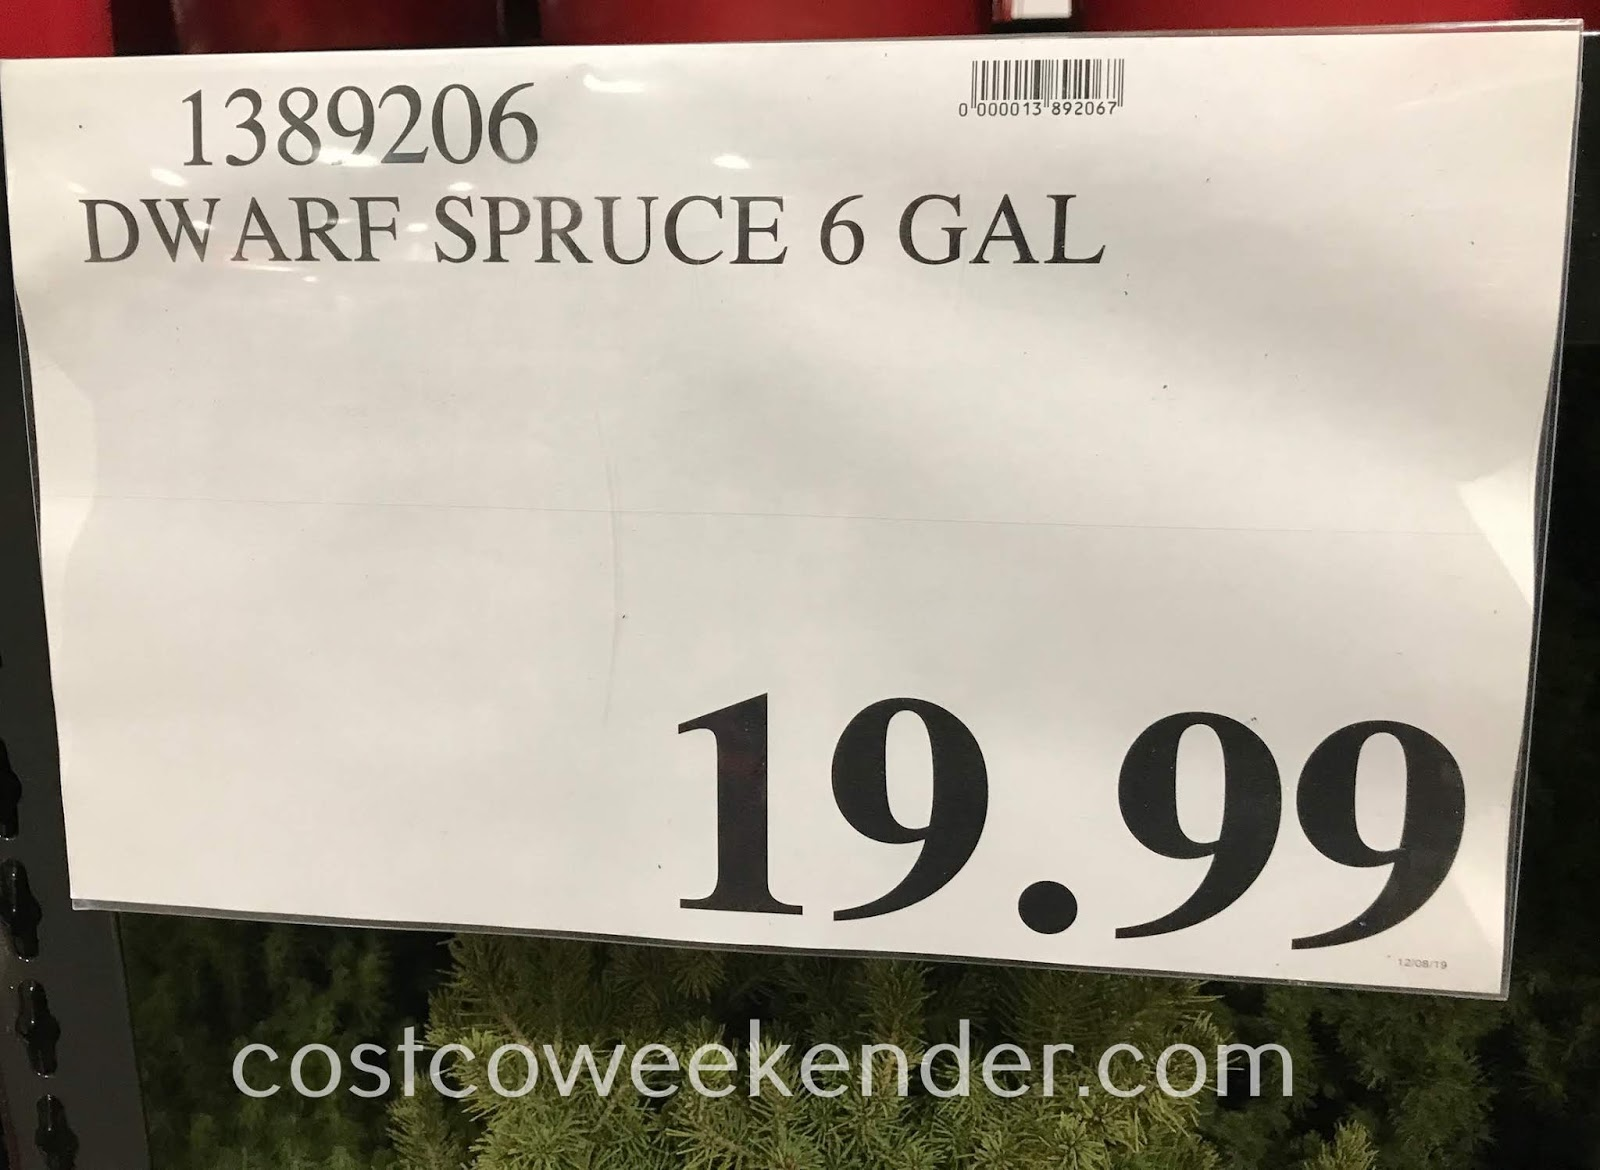 Deal for a Dwarf Alberta Spruce Tree at Costco